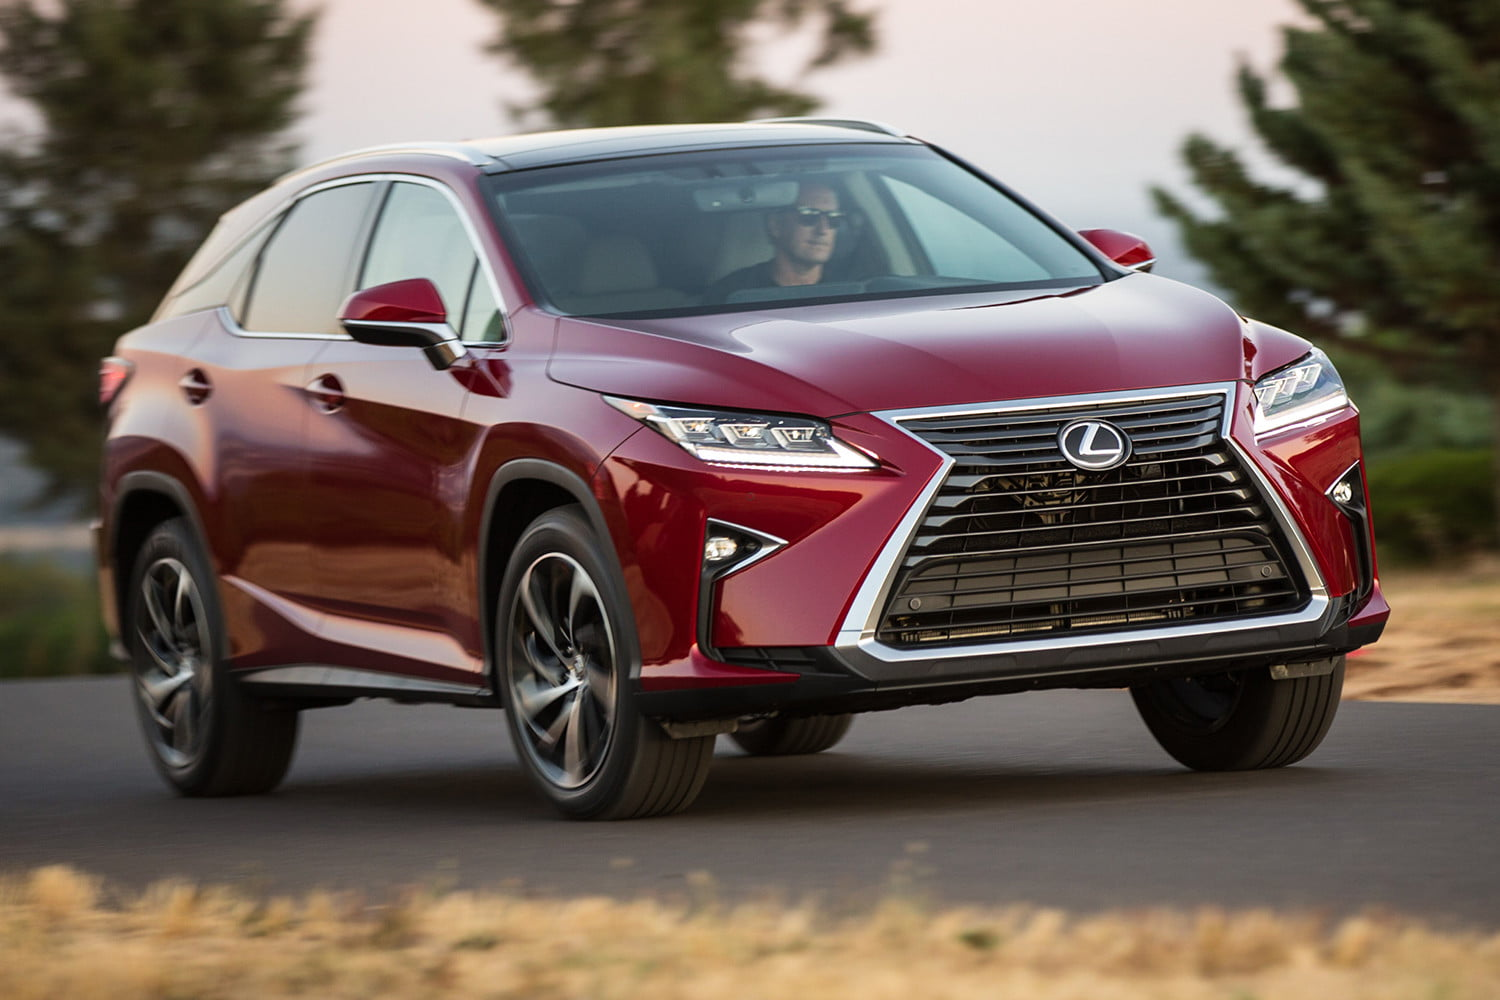 2016 lexus rx350 and lexus rx450h first drive review digital trends. Black Bedroom Furniture Sets. Home Design Ideas